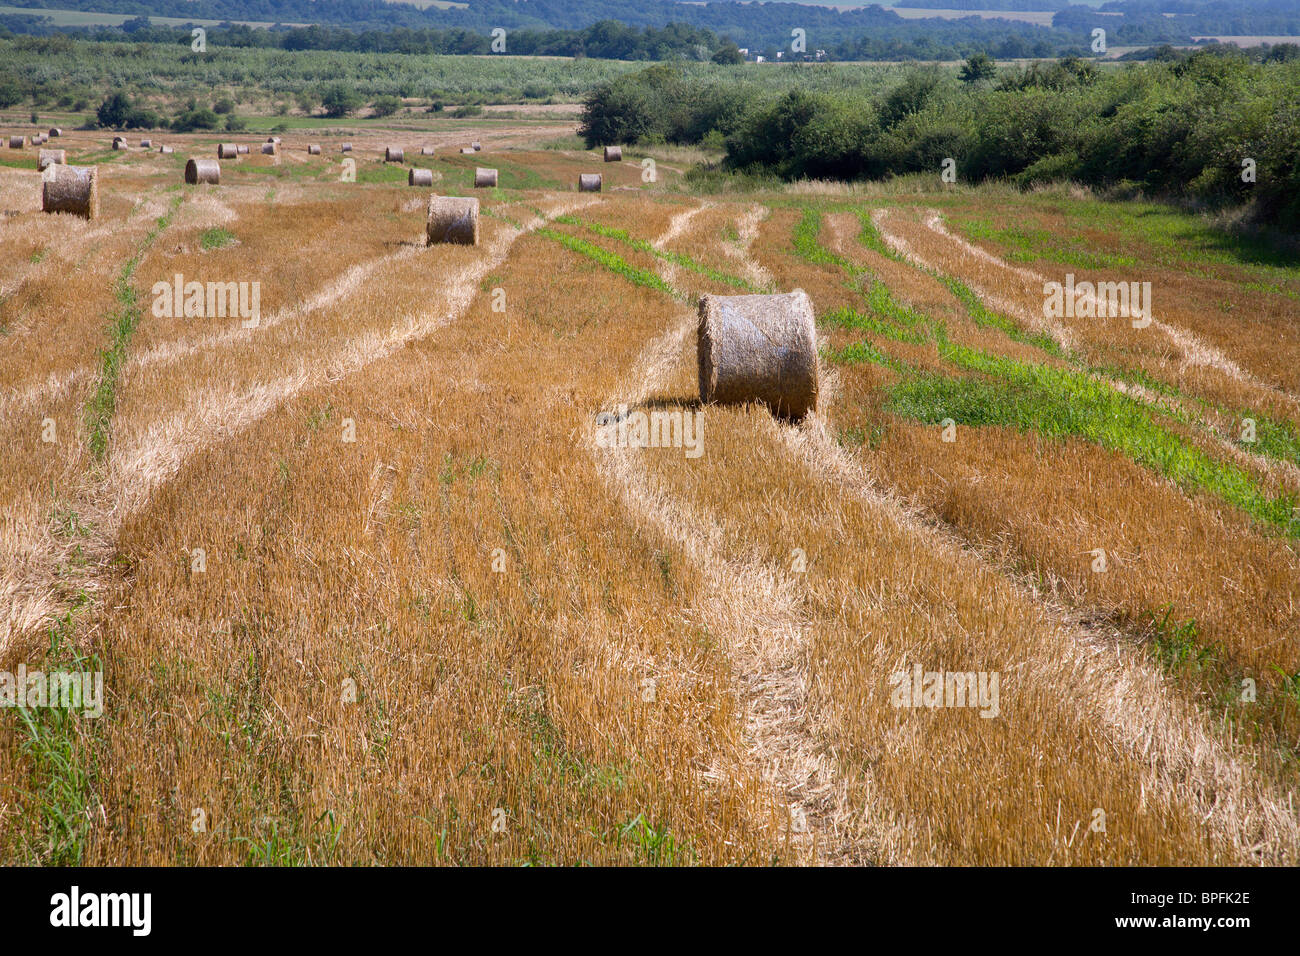 bale of the straw on the acre - Stock Image